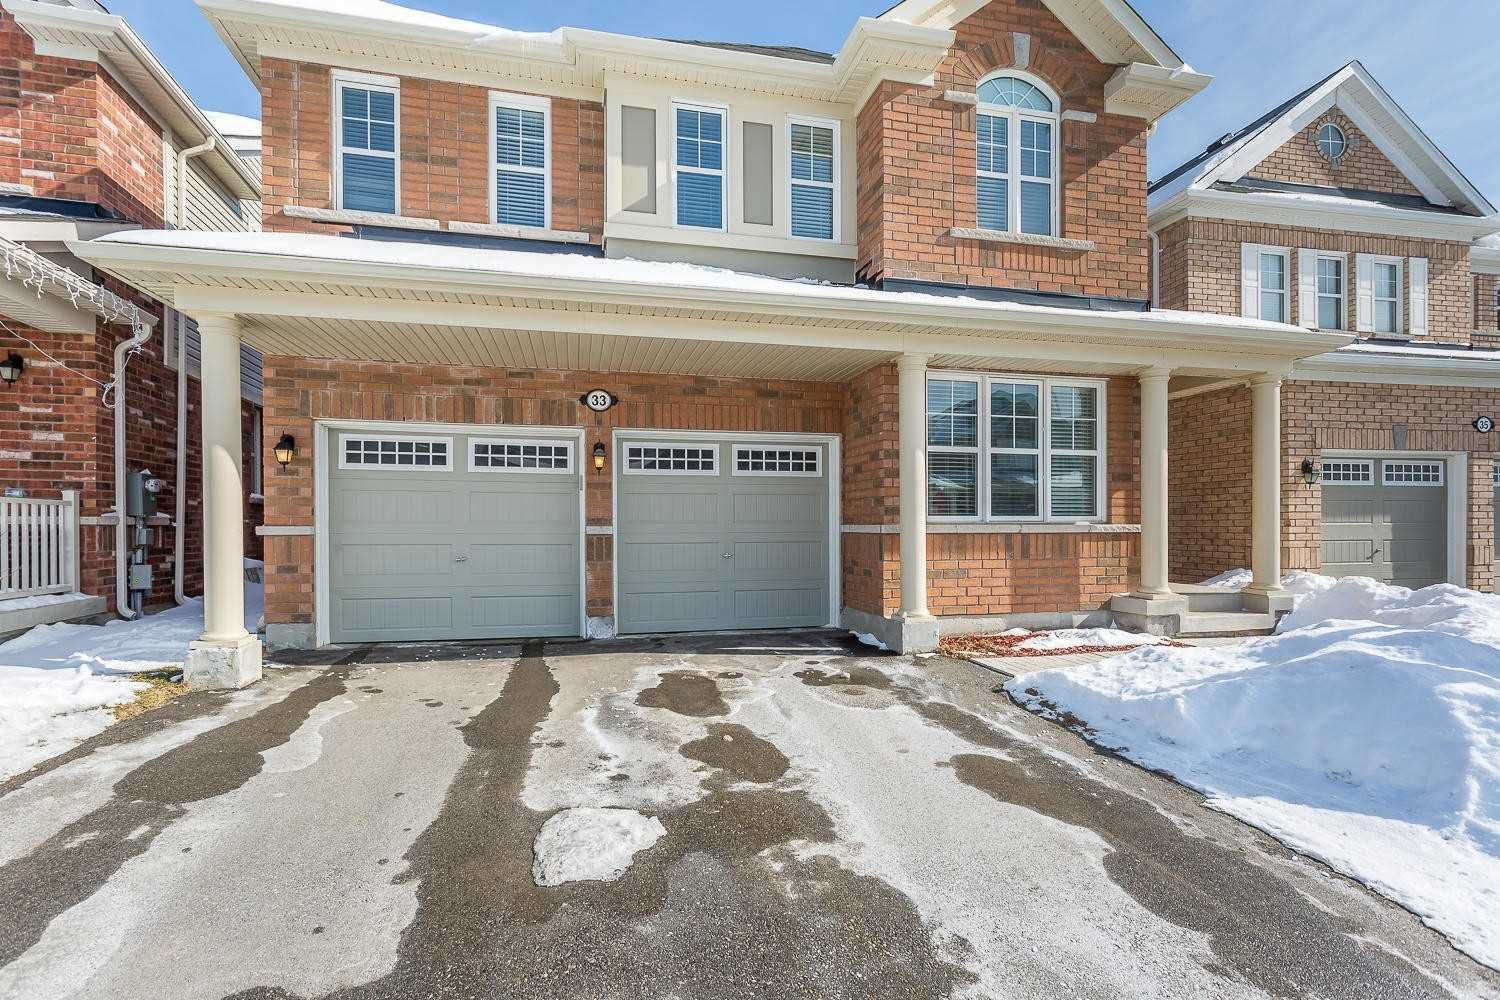 Main Photo: 33 Polstar Road in Brampton: Northwest Brampton House (2-Storey) for sale : MLS®# W4374585